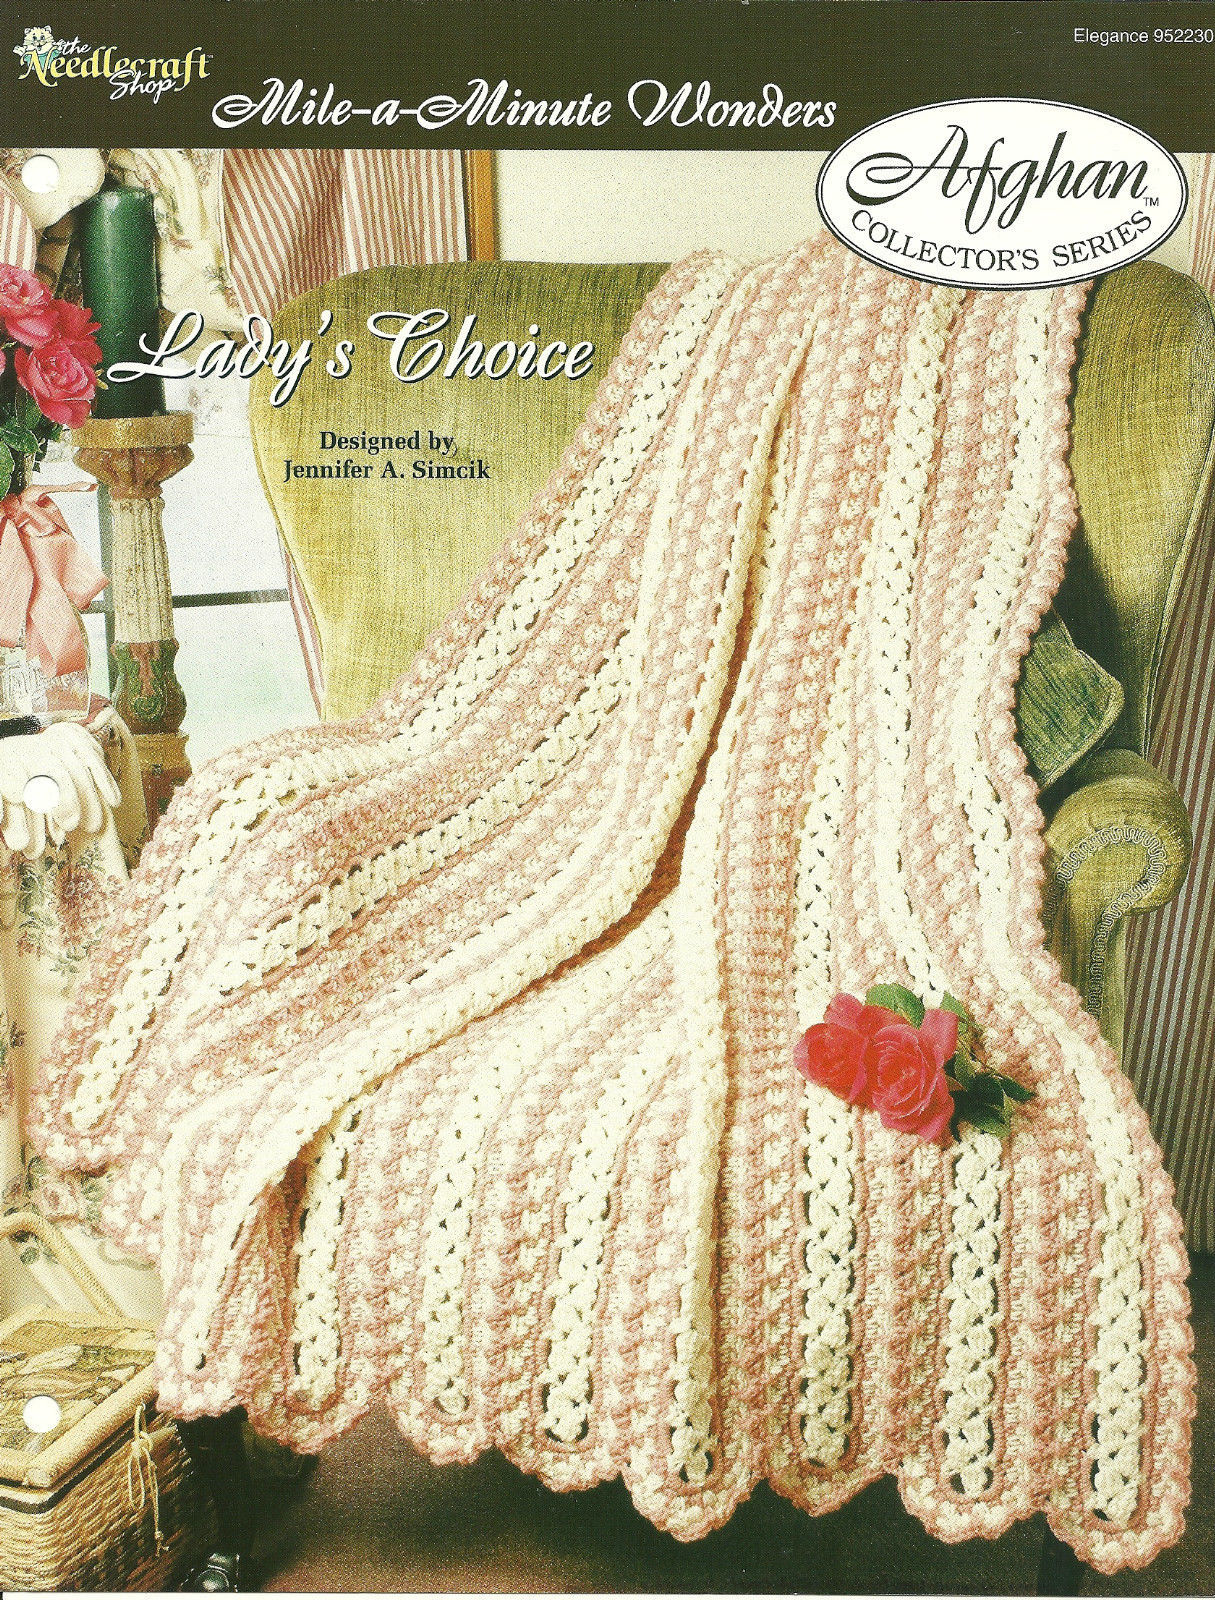 Needlecraft Shop Crochet Pattern 952230 Ladys Choice Afghan Collectors Series